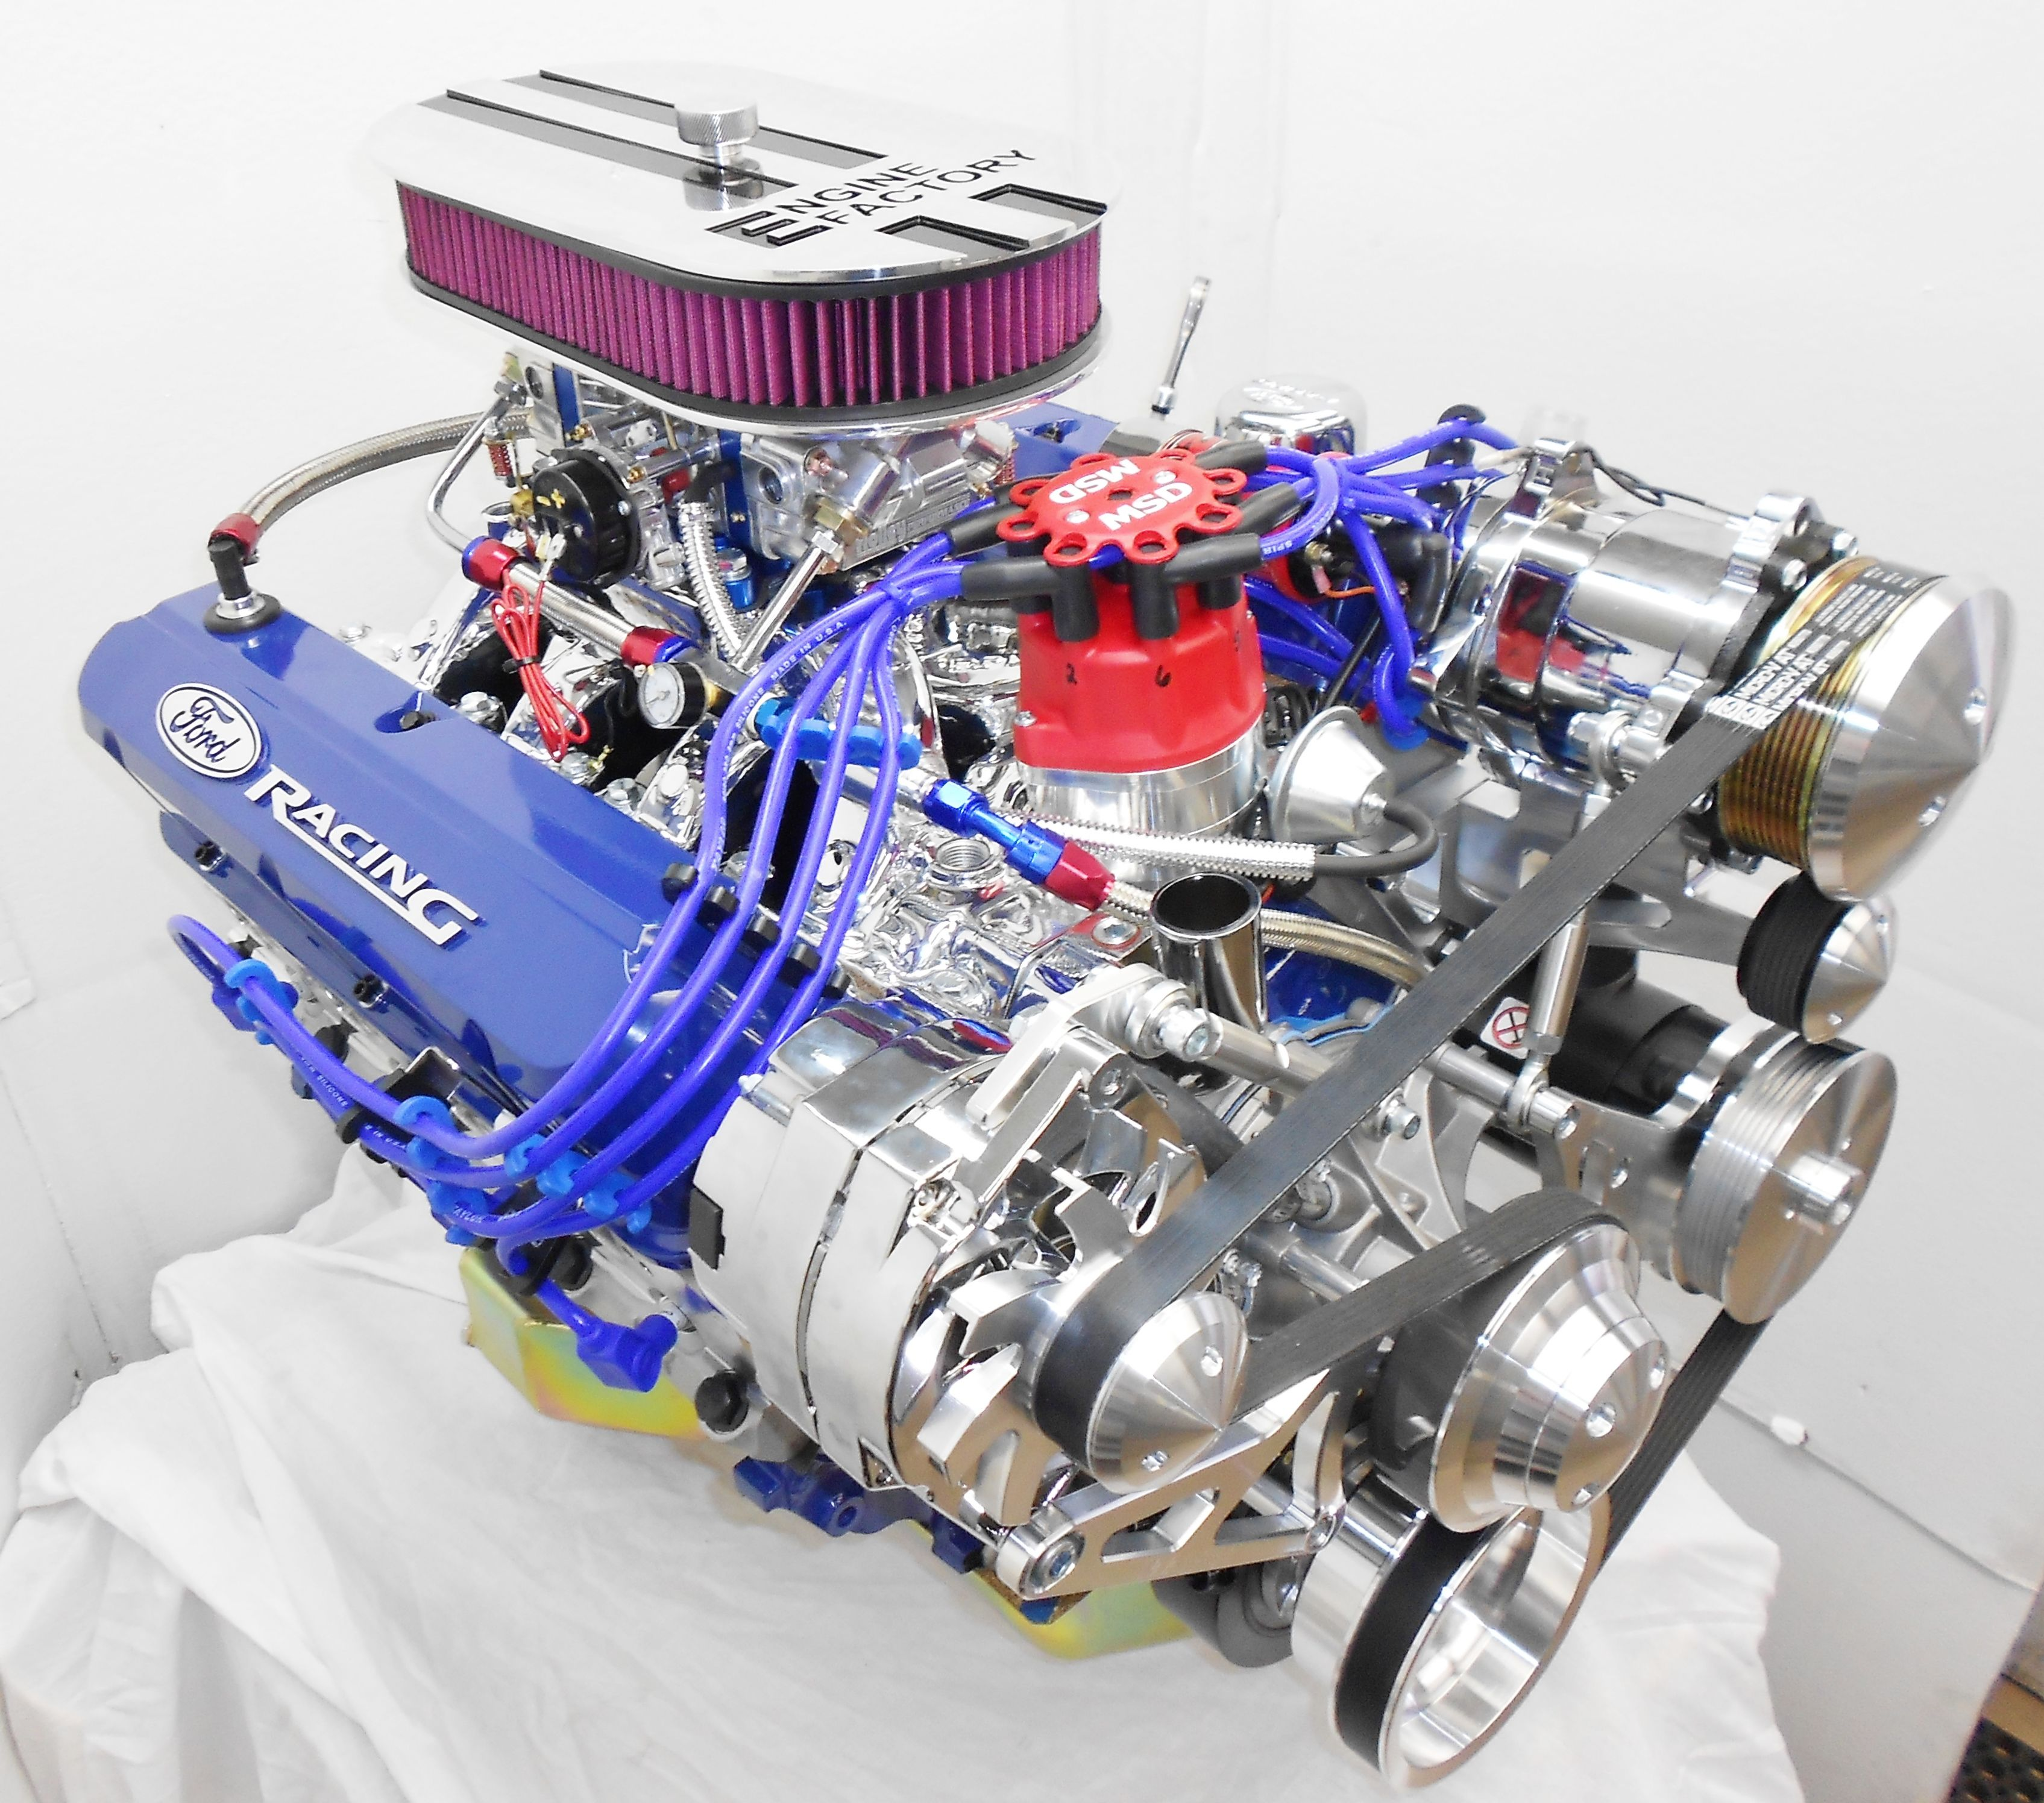 Httpenginefactoryfordperformanceenginechoicesm sick ford 331 stroker yesyes yesss any windsor based ford will do malvernweather Images